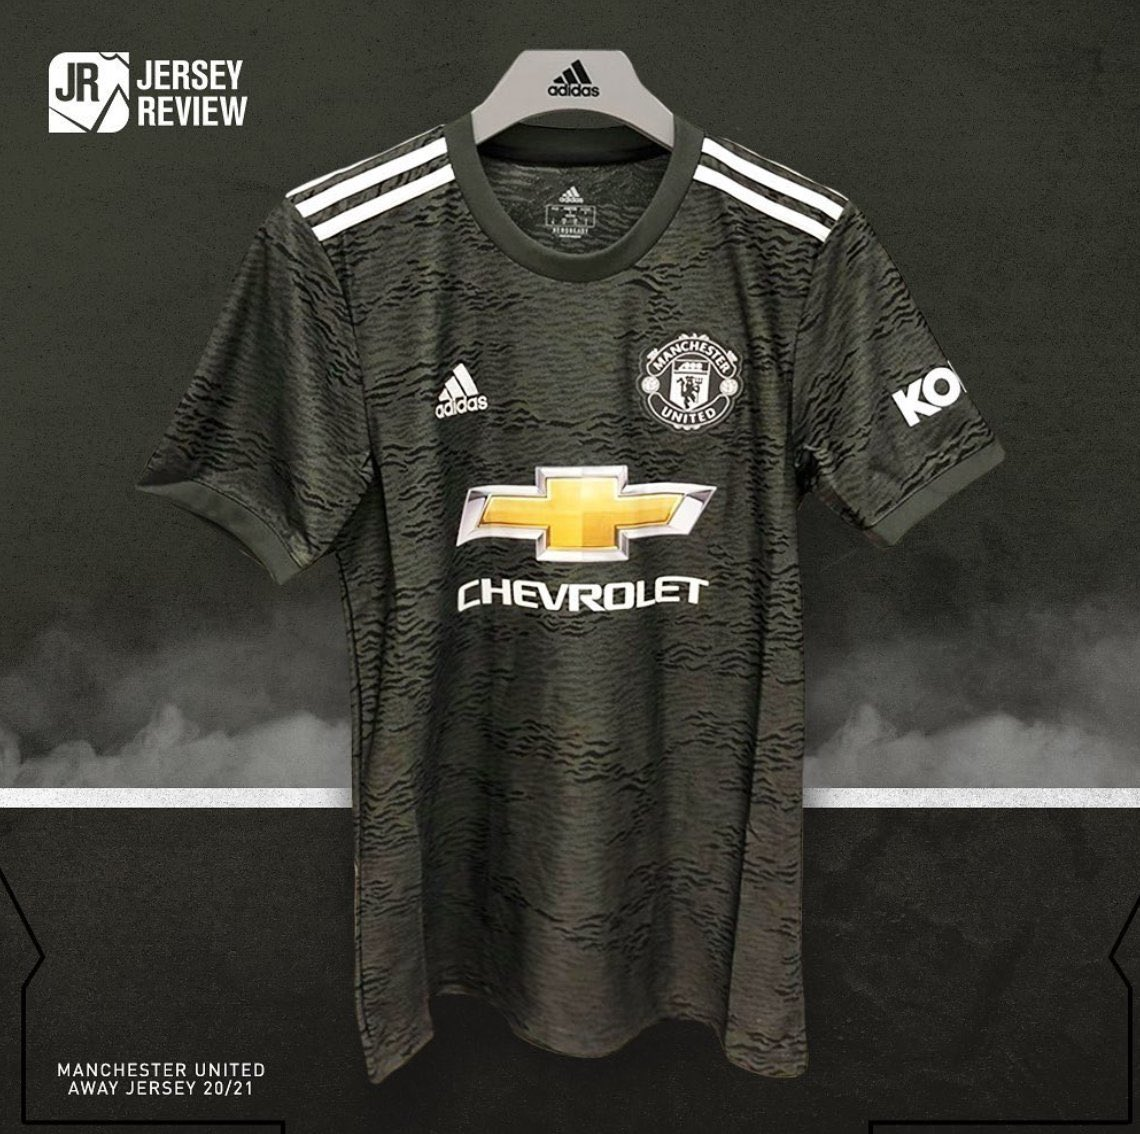 The United Stand News On Twitter New Images Have Been Released Of United S New Away Kit For 20 21 Today Jersey Review On Ig Footy Headlines This Will Be The First To Launch From